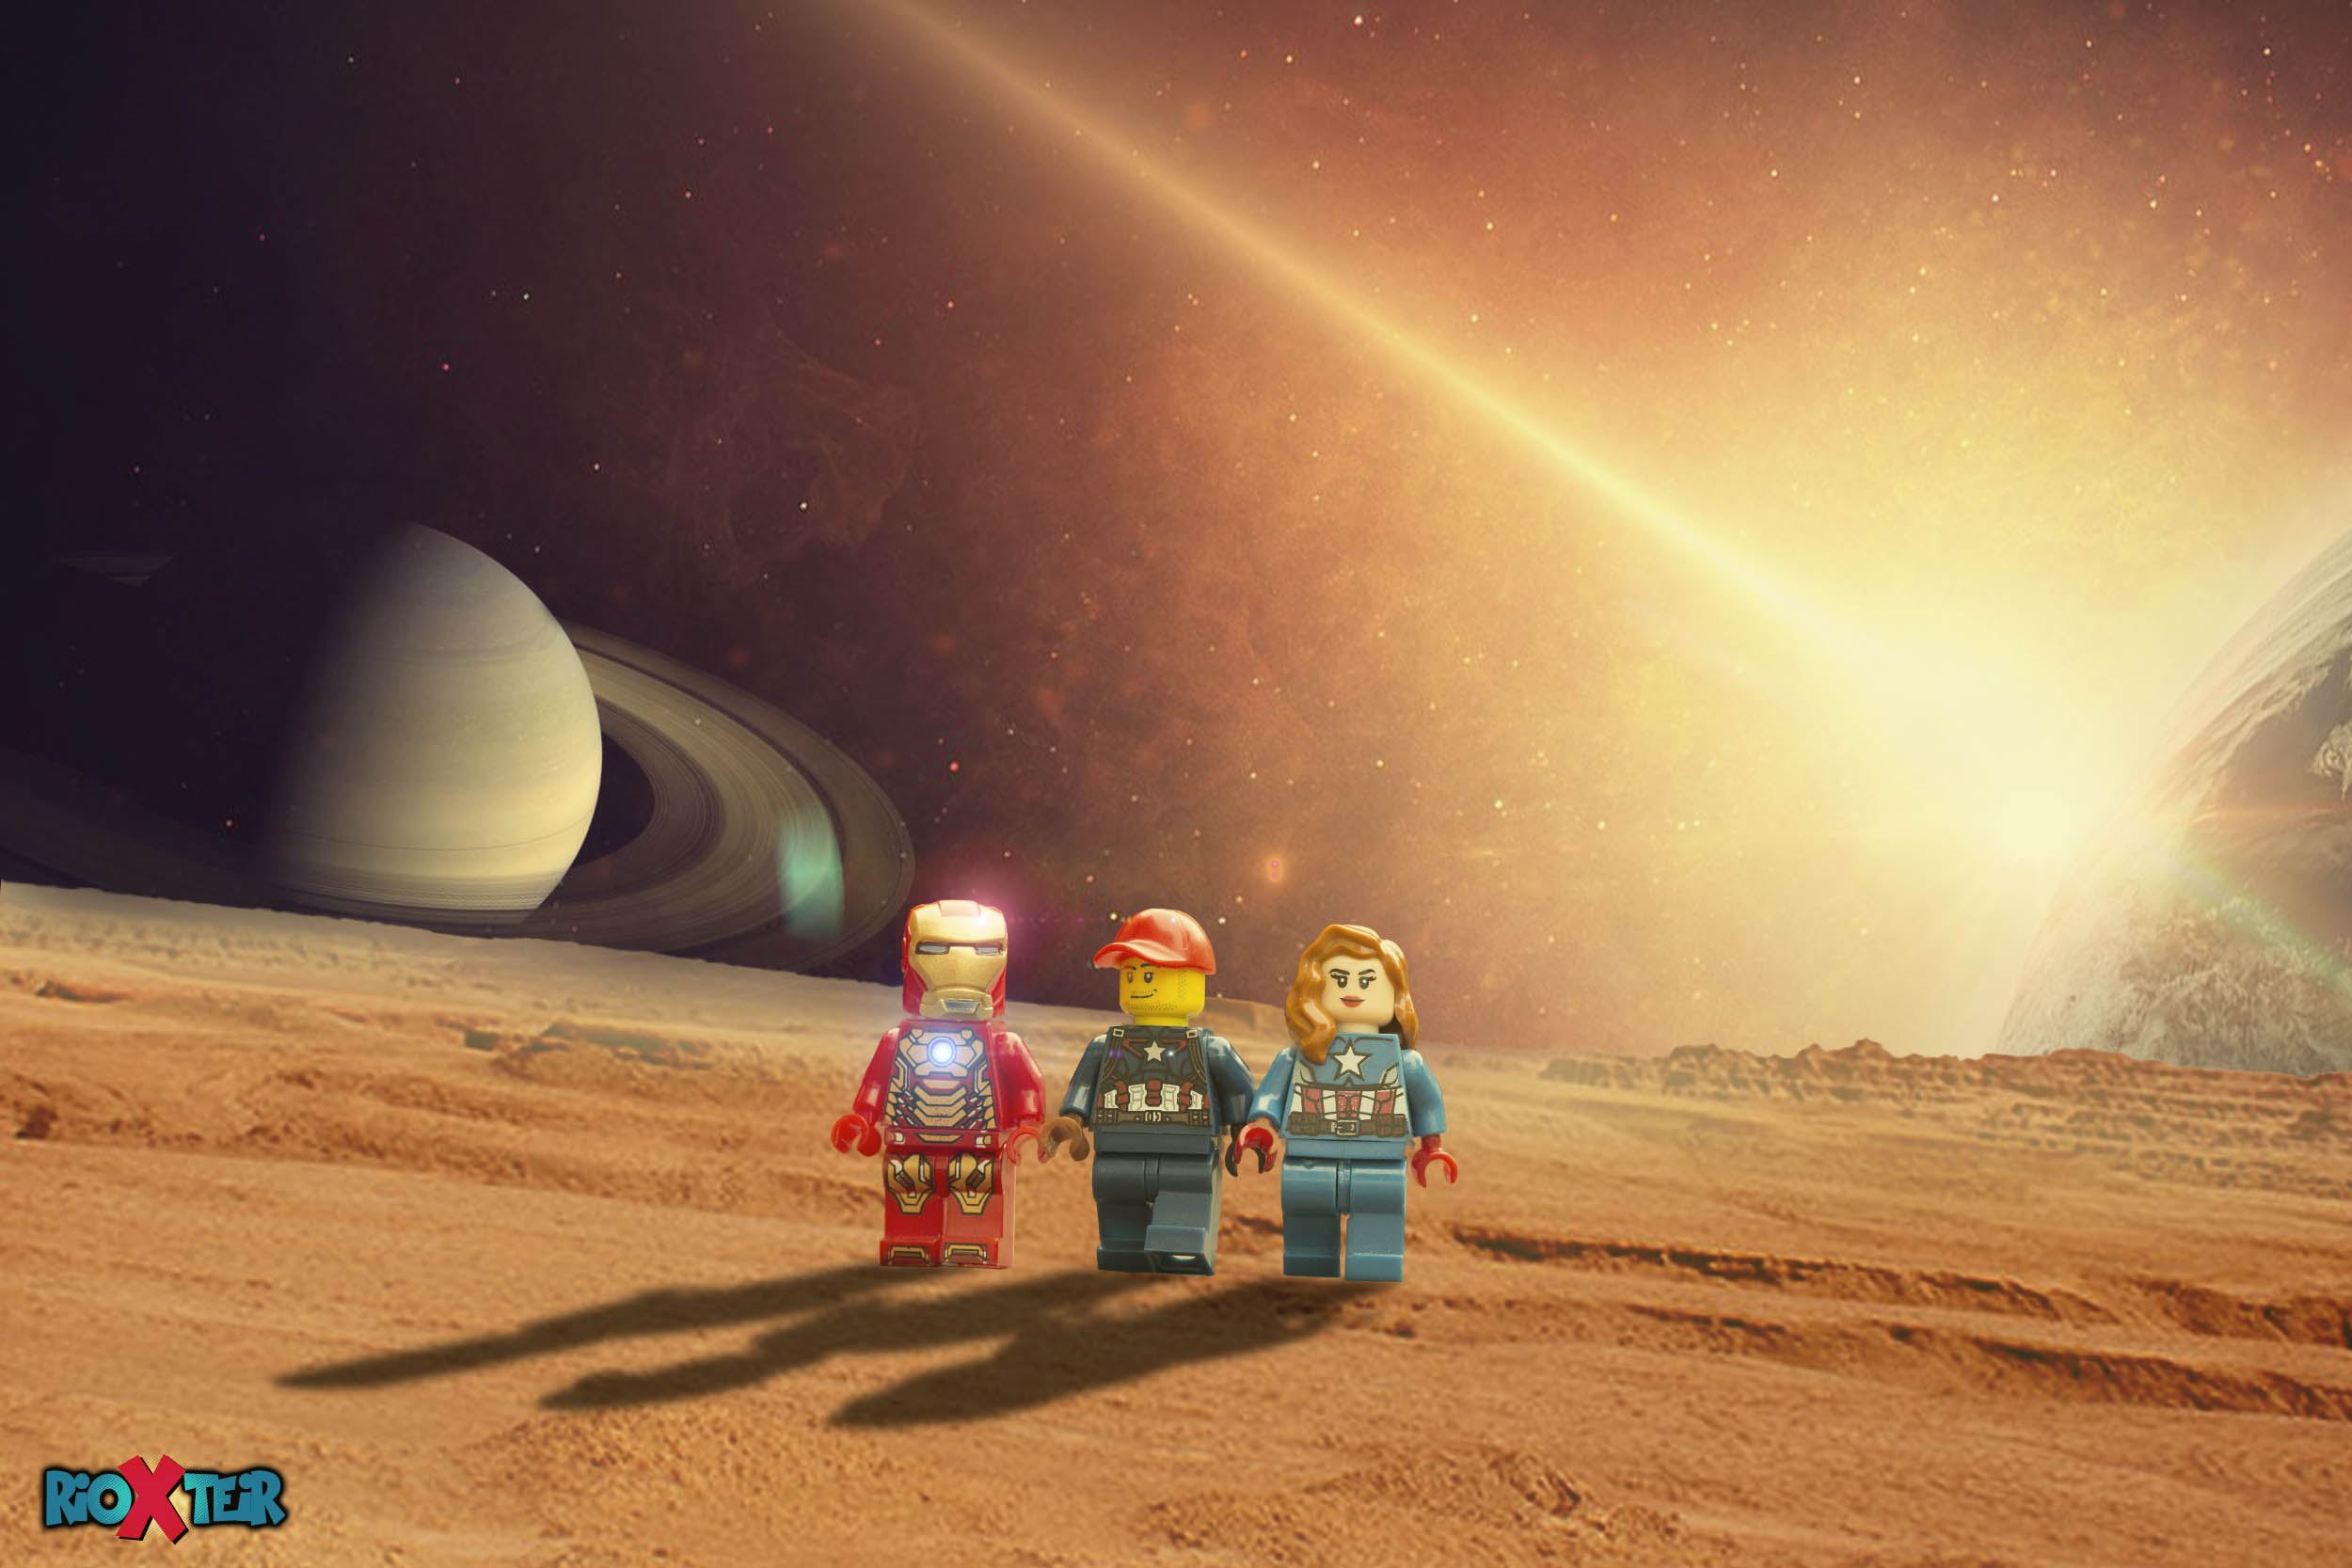 Lego Marvel Avengers in Space